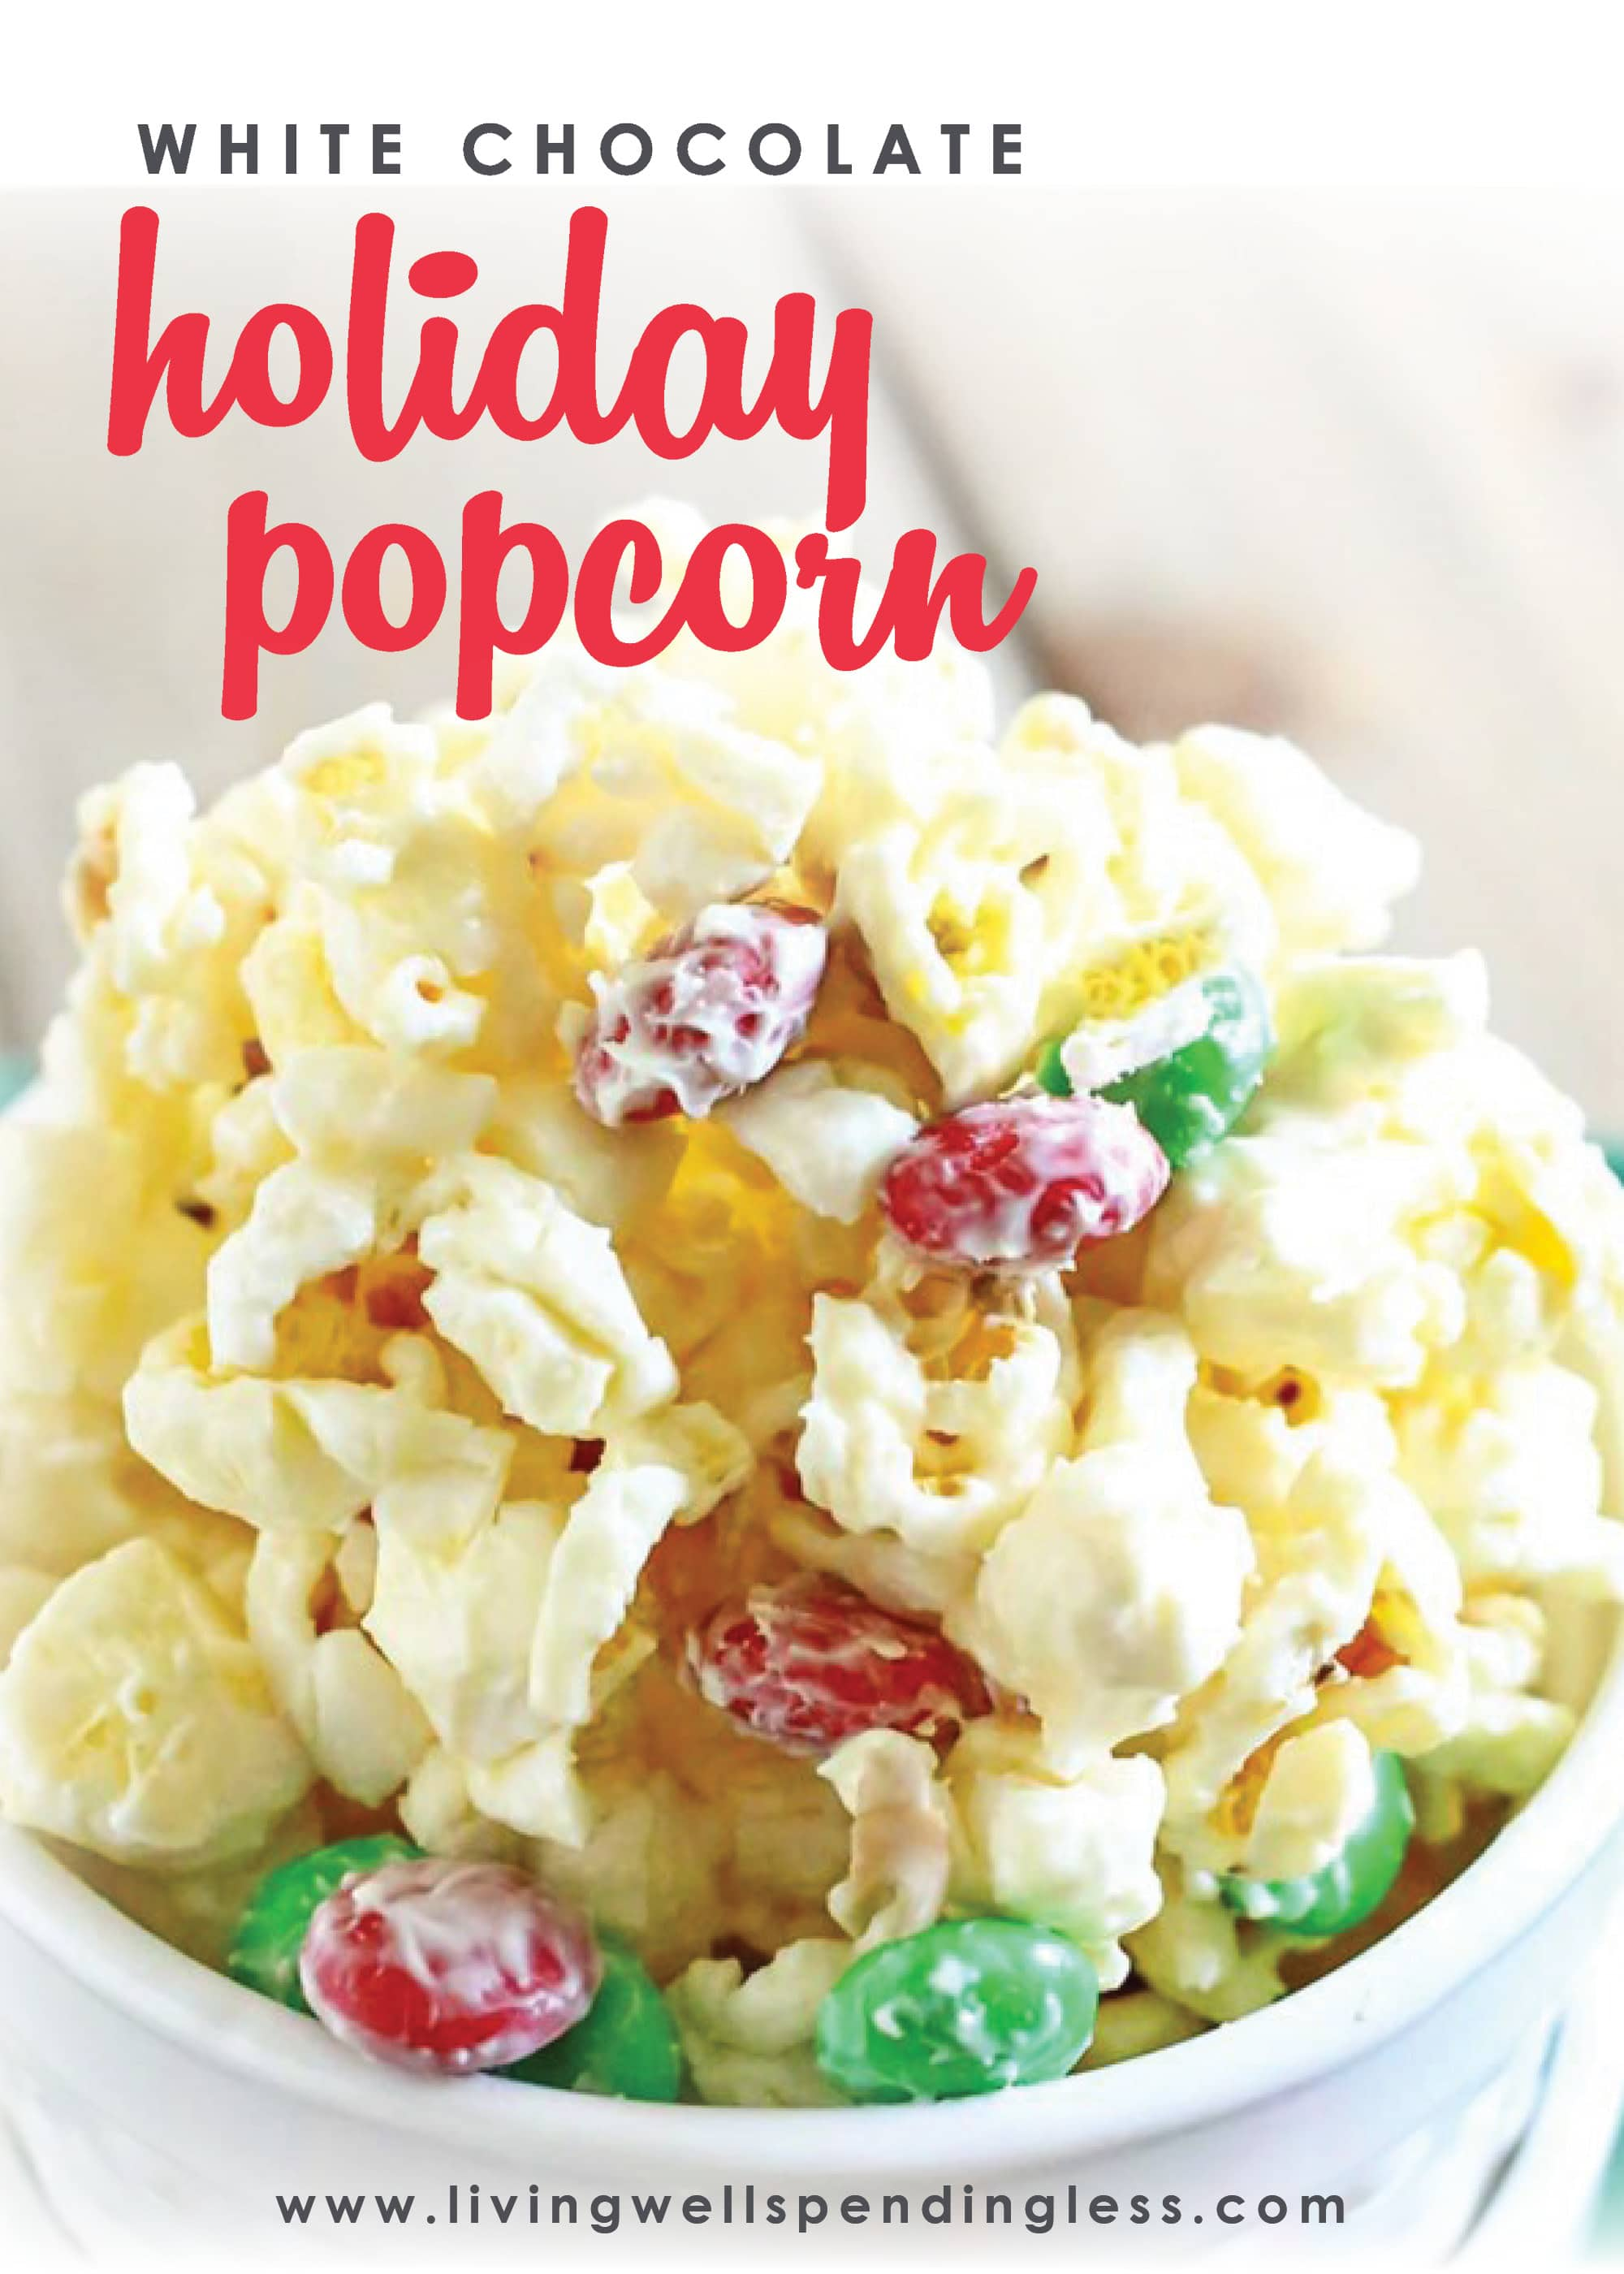 Craving a festive holiday treat that's both a little salty AND a little sweet? This delicious White Chocolate Holiday Popcorn comes together in minutes with just four easy ingredients! Package it as gifts or keep it all for yourself--either way it's absolutely delicious!